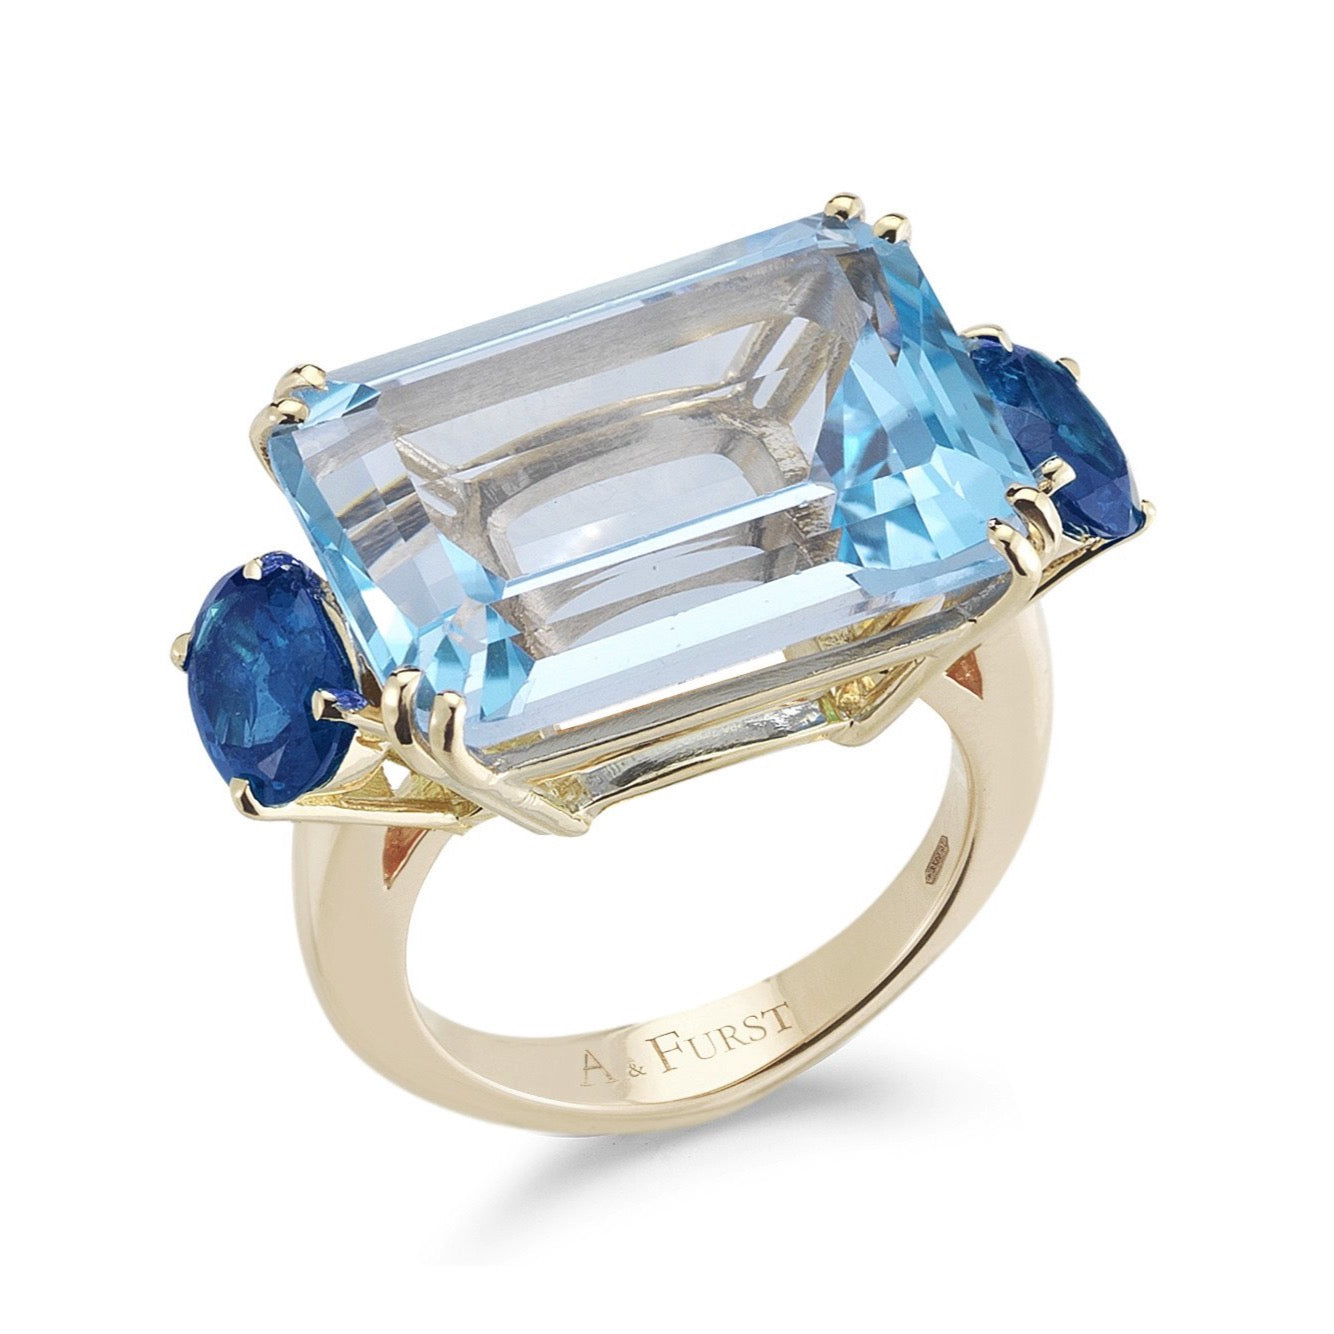 "A & Furst ""Party"" Cocktail Ring with Blue Topaz and Blue Sapphires, 18k Yellow Gold."